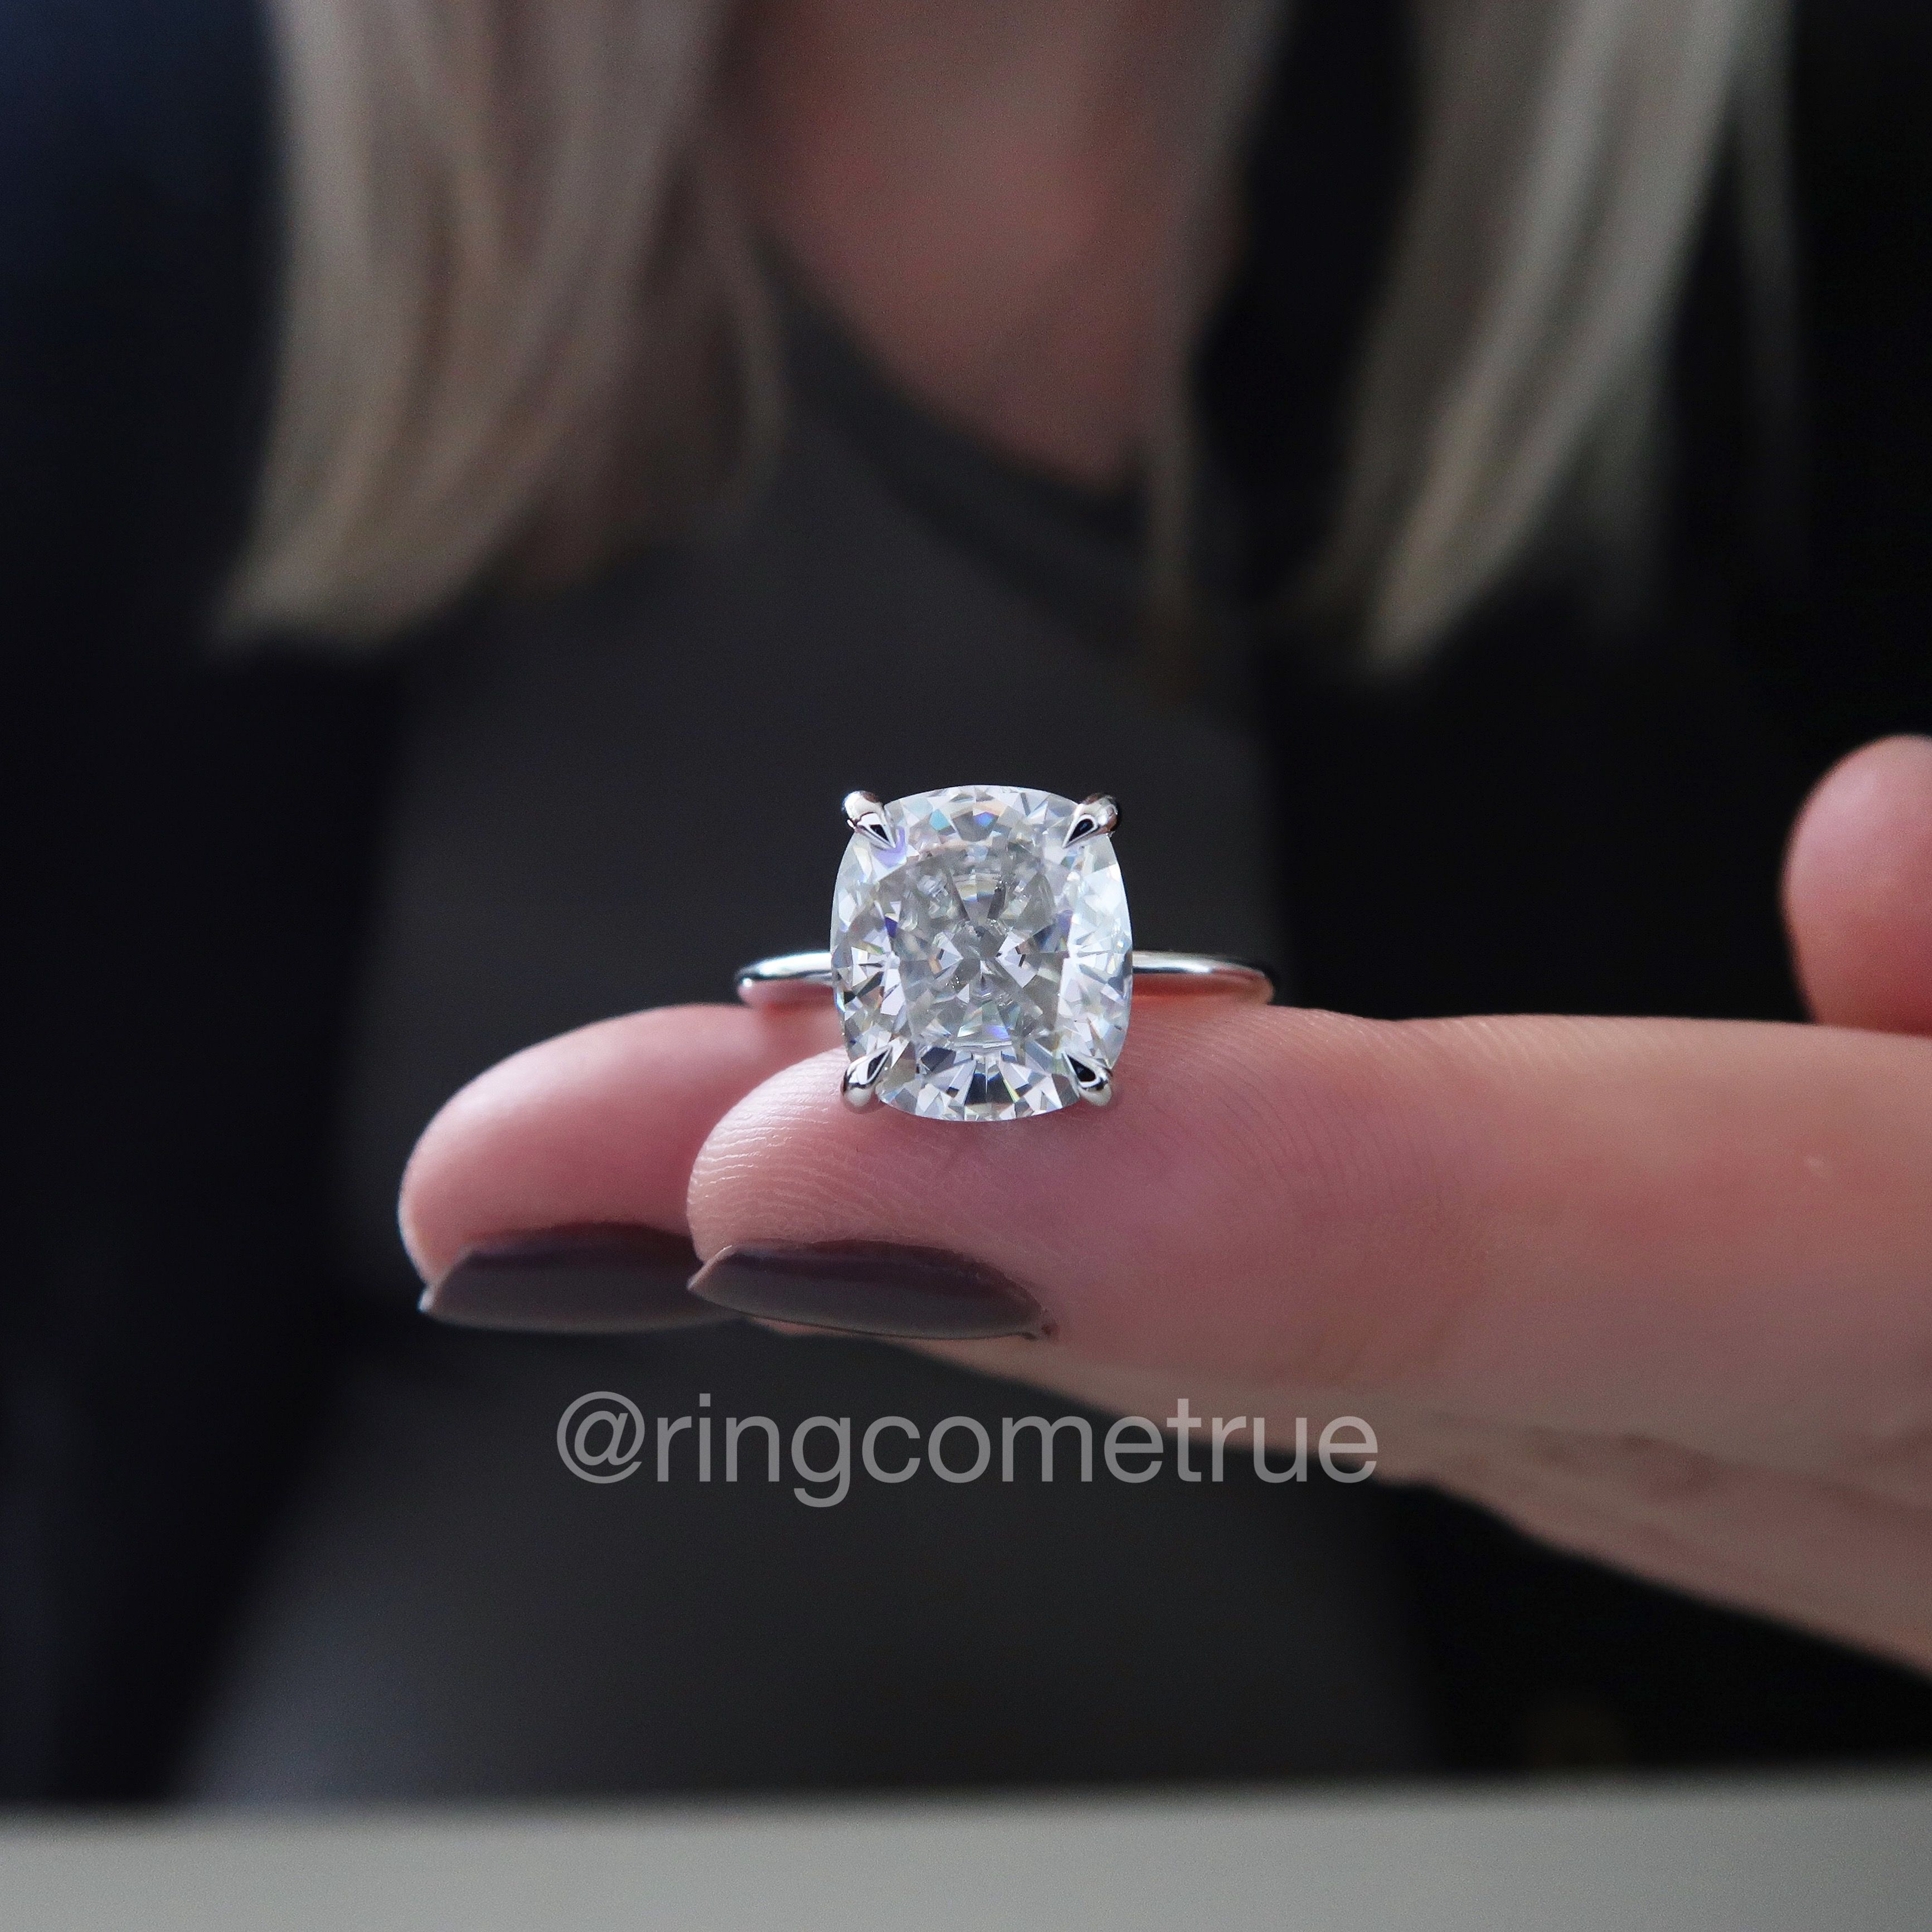 a500b5373 Crushed Ice elongated cushion cut Harro Gem moissanite solitaire engagement  ring. 14K white gold.